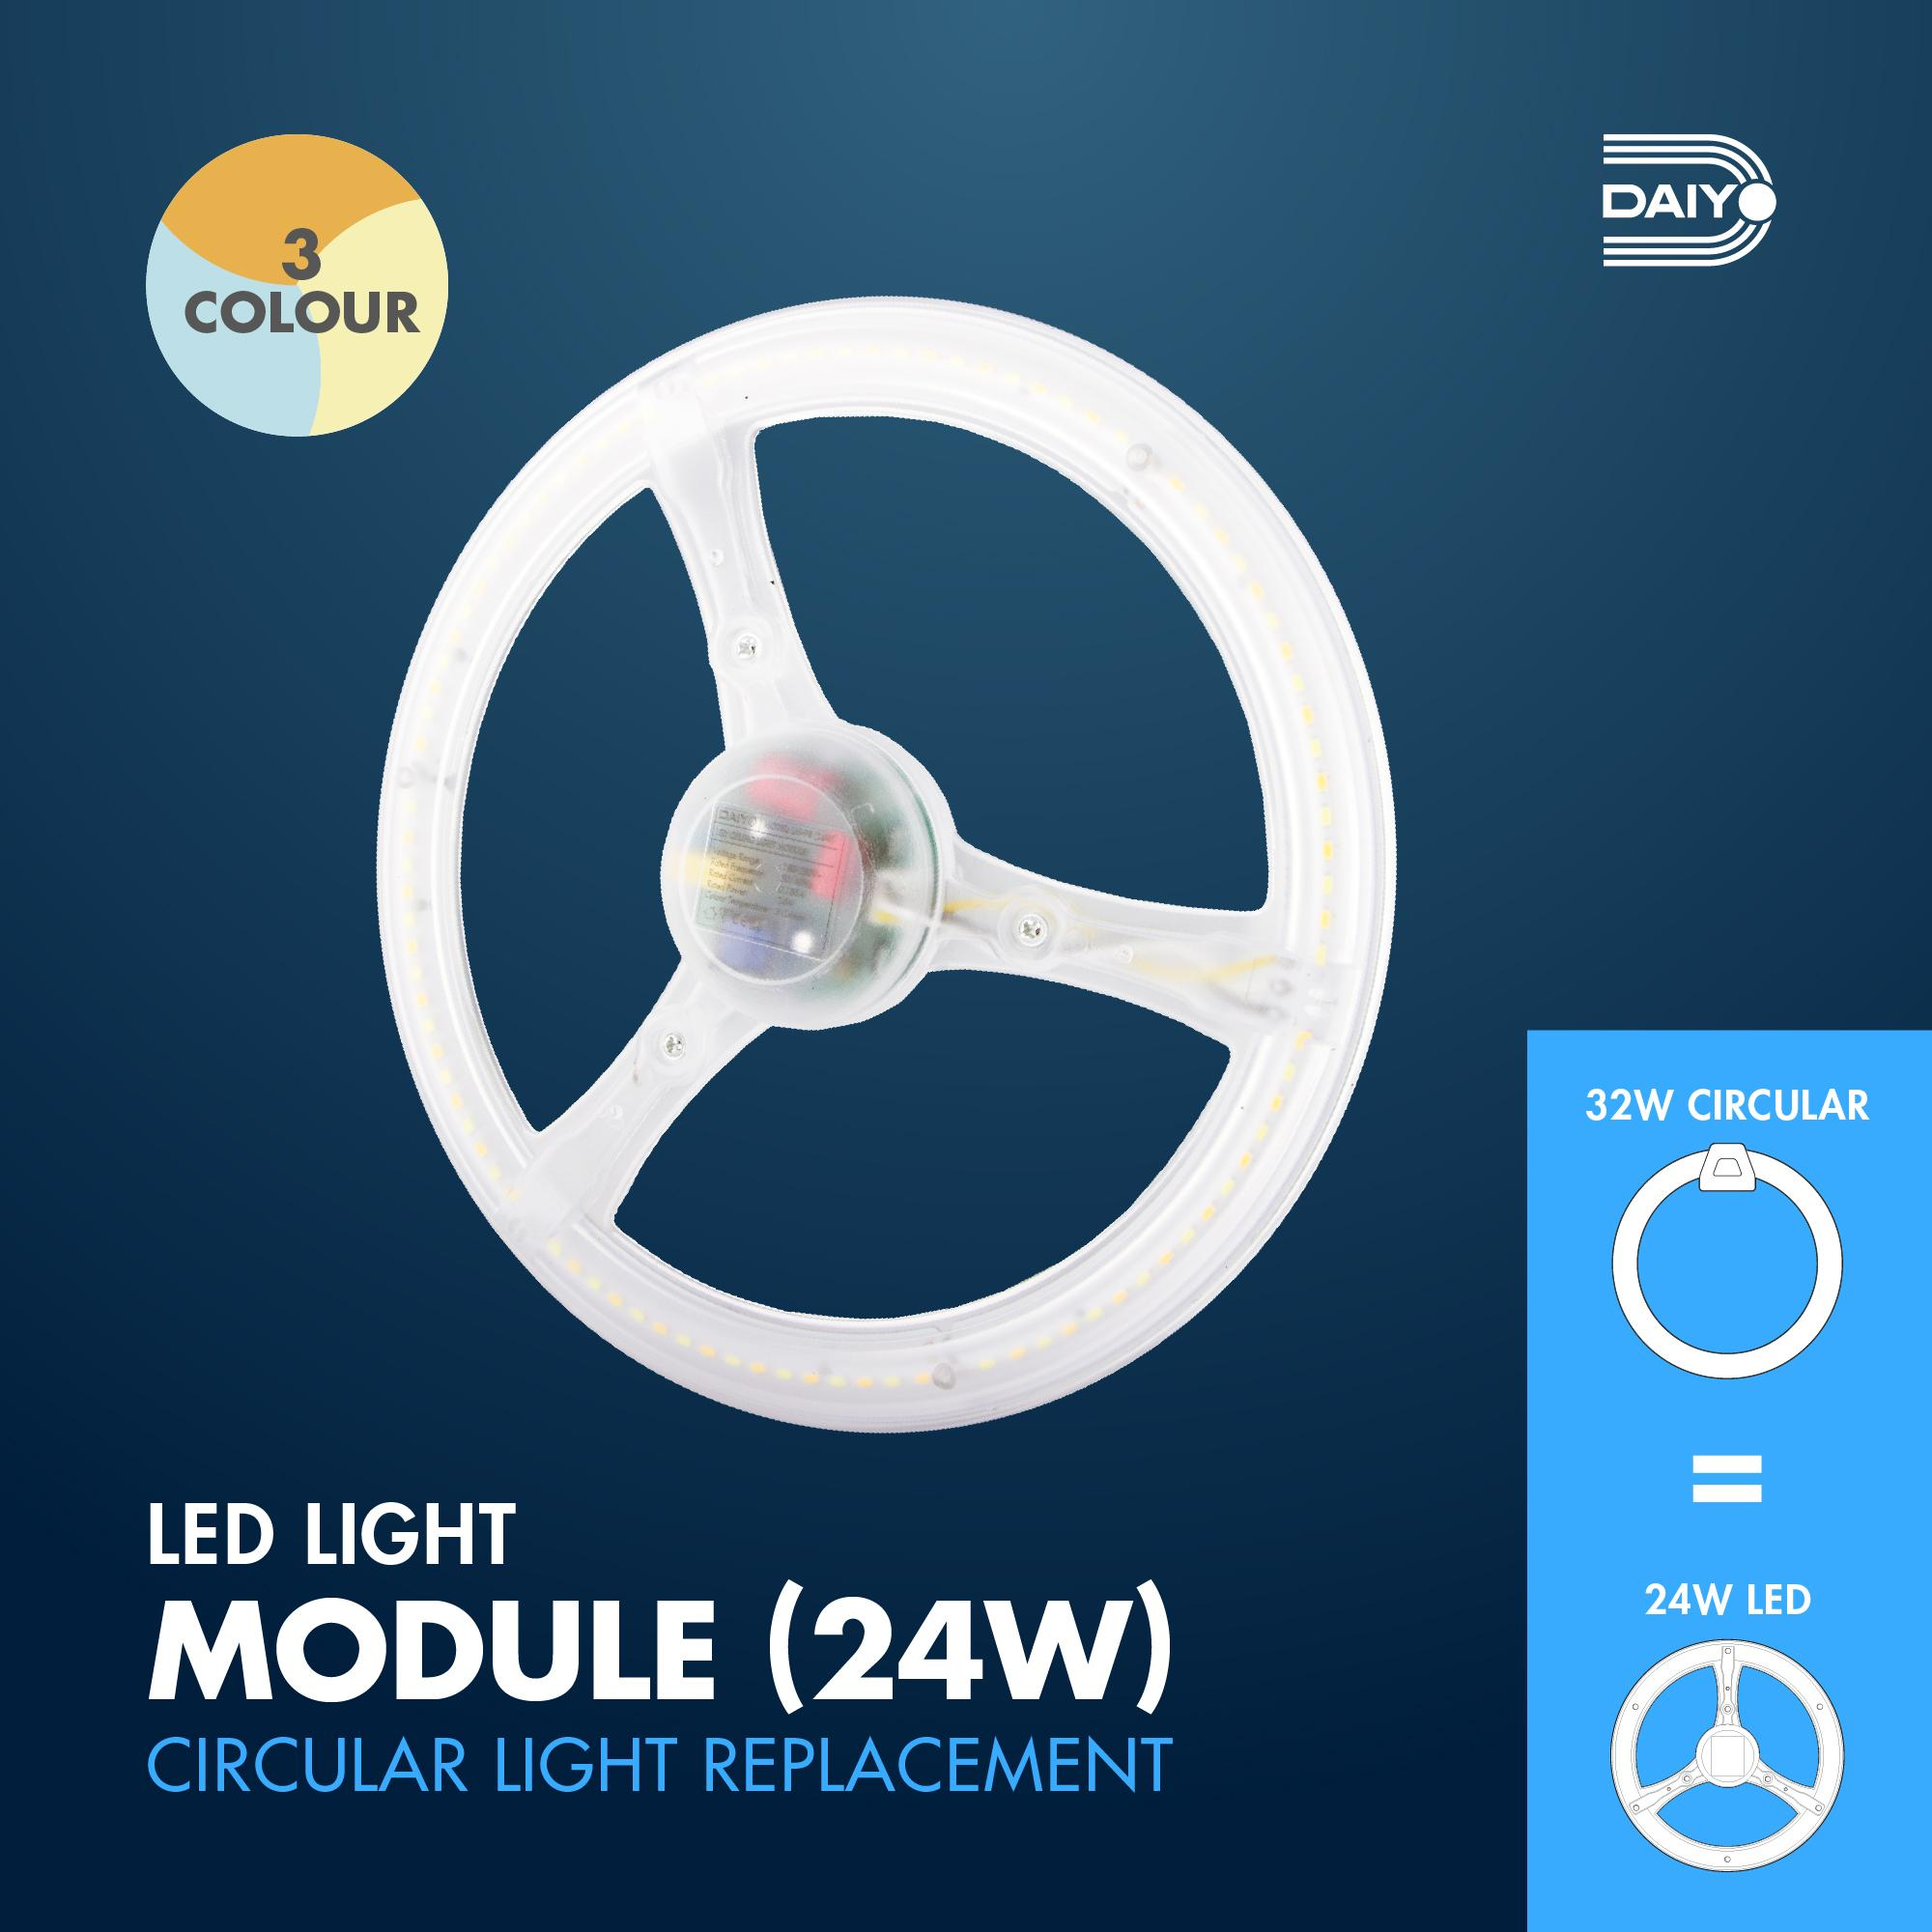 24W LED Circular Replacement Magnetic Base Ceiling Panel (3 Colour)